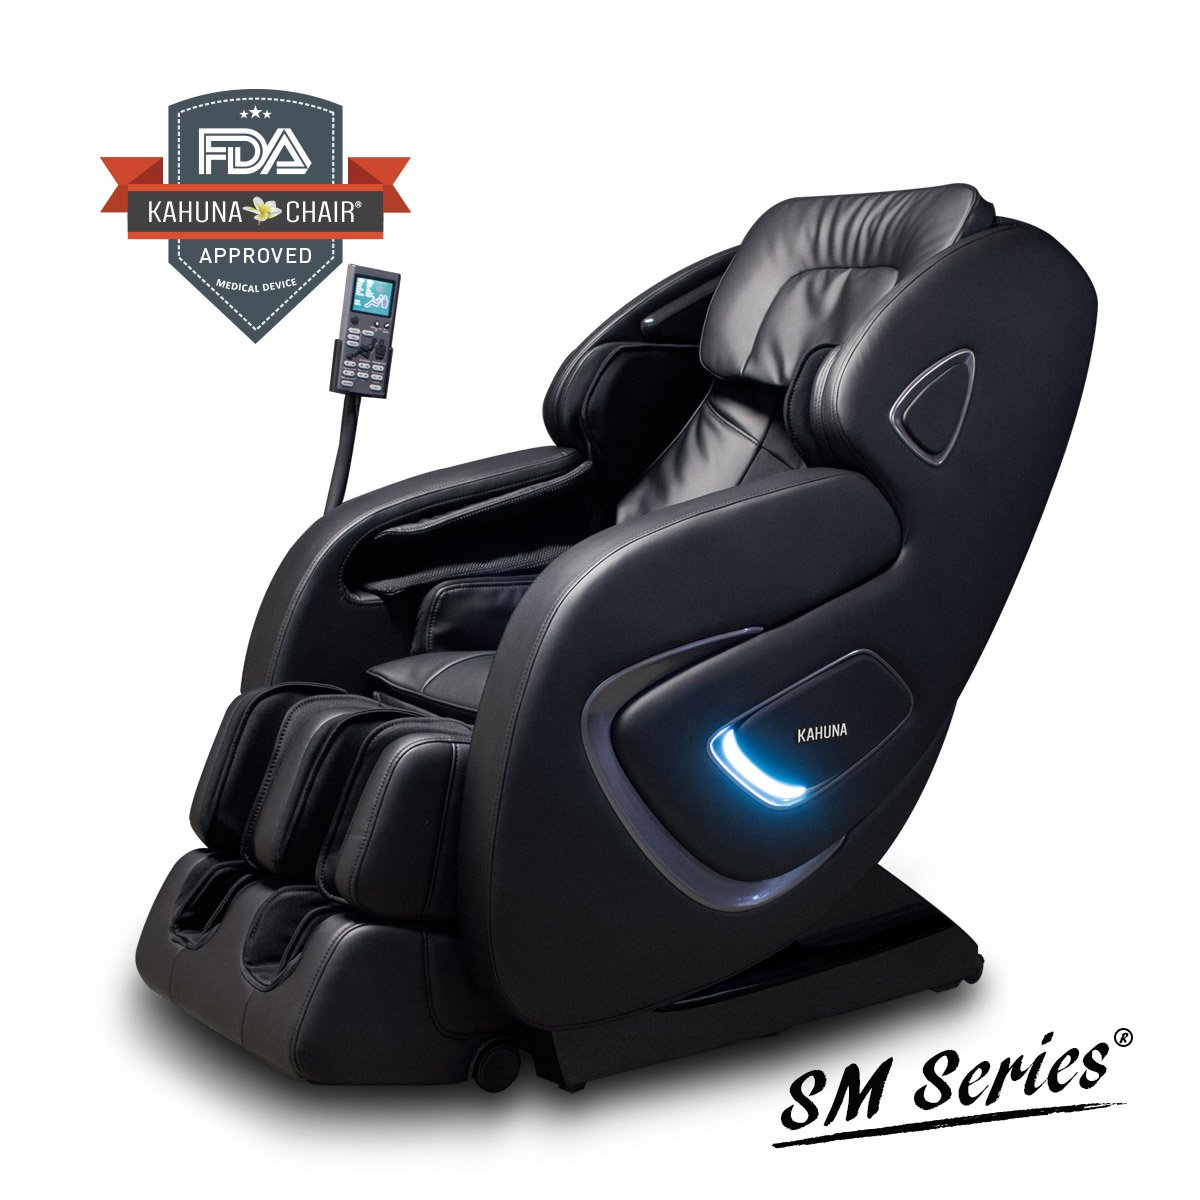 AIR FLOAT 3D+ 6 INFRARED ROLLER MECHANISM KAHUNA SUPERIOR MASSAGE CHAIR - SM-9000 (BROWN) Kahuna Massage Chair